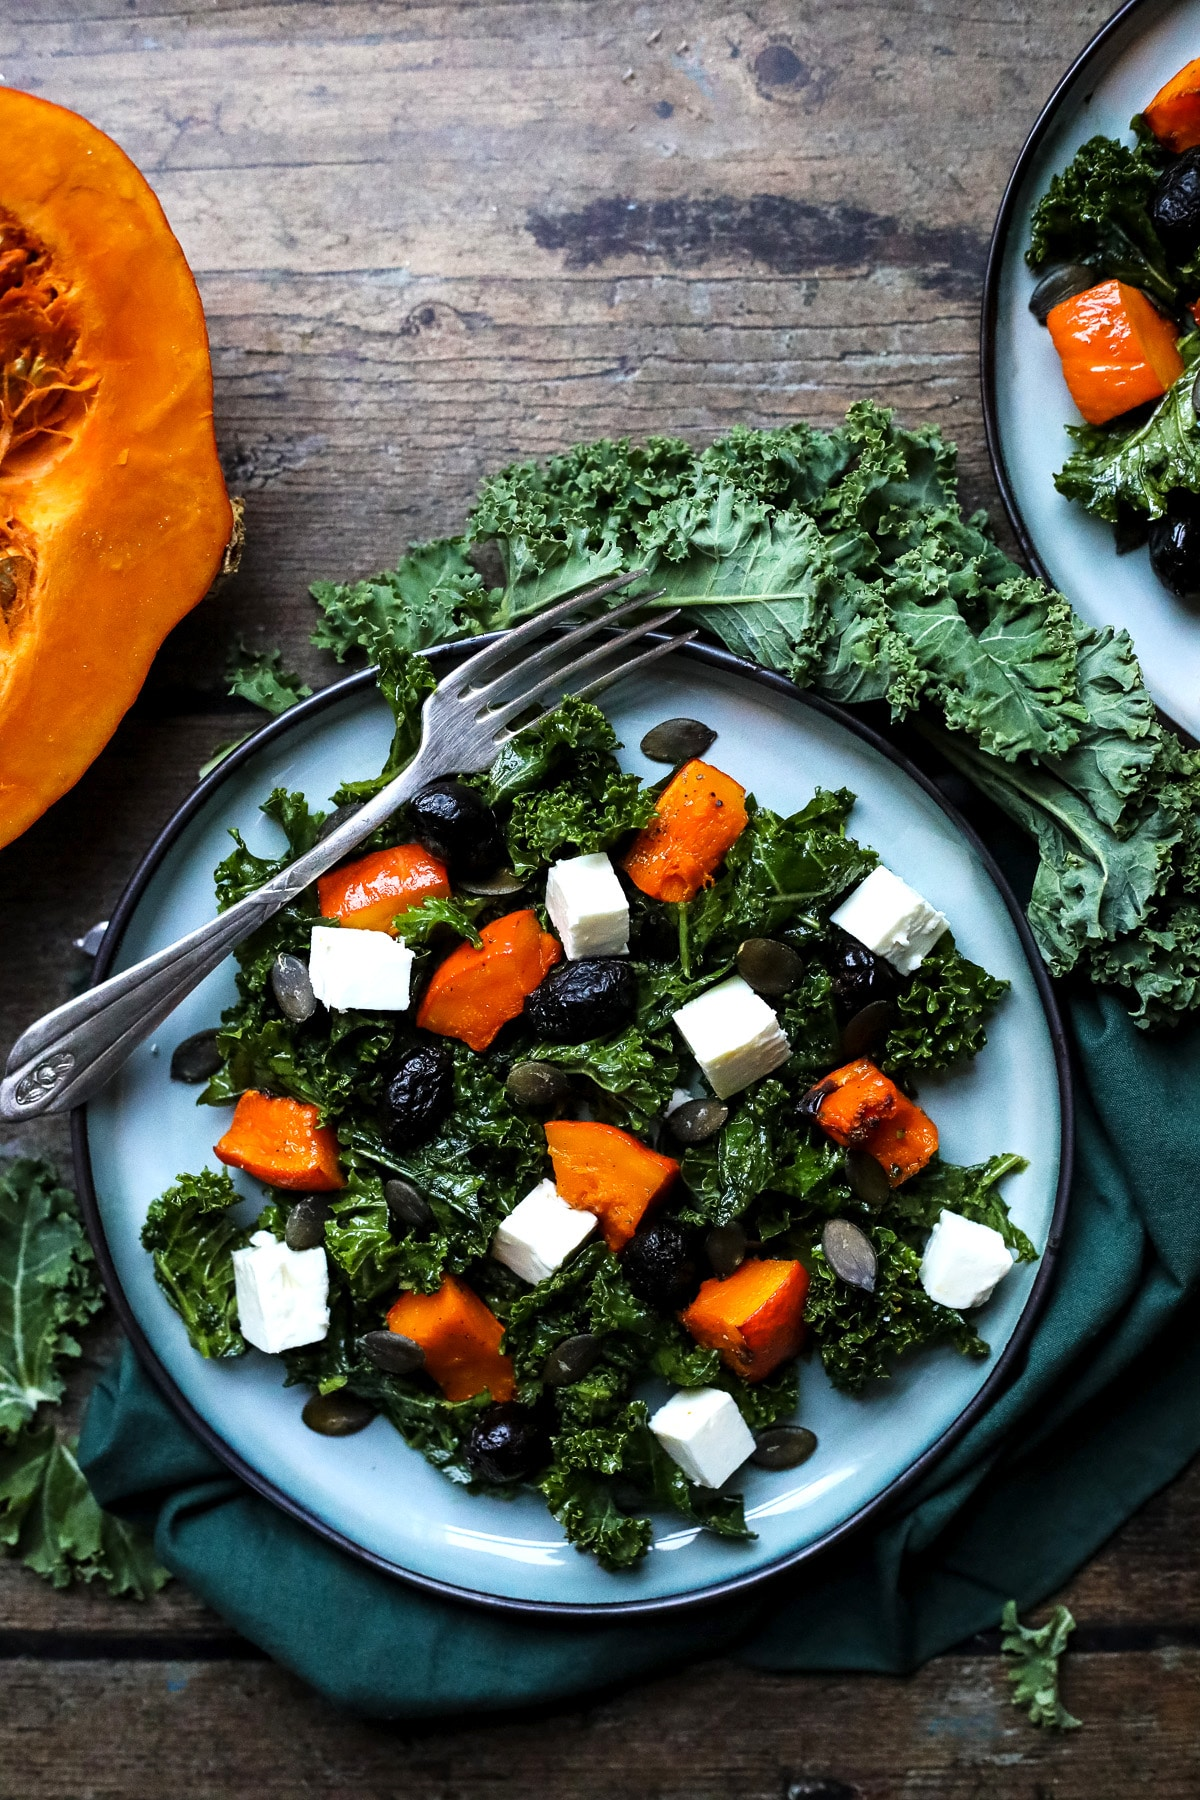 Roasted Pumpkin Salad with Kale on a Plate.